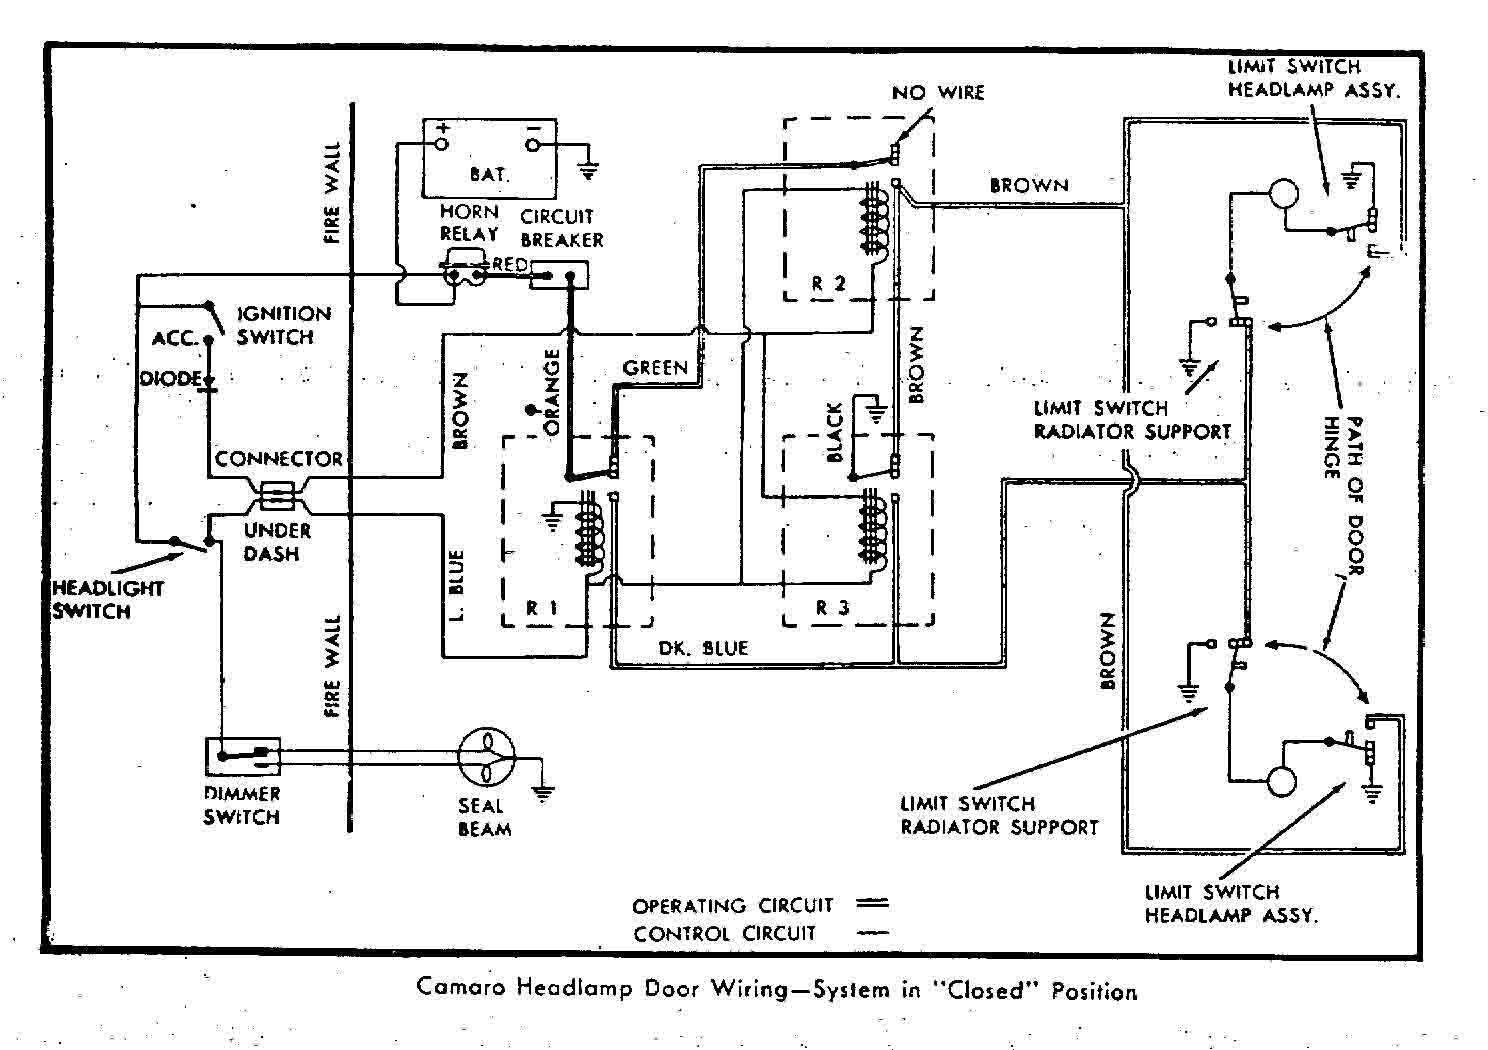 hight resolution of 1968 camaro headlamp wiring diagram wiring diagram source 67 camaro tachometer wiring diagram 1967 camaro wiring